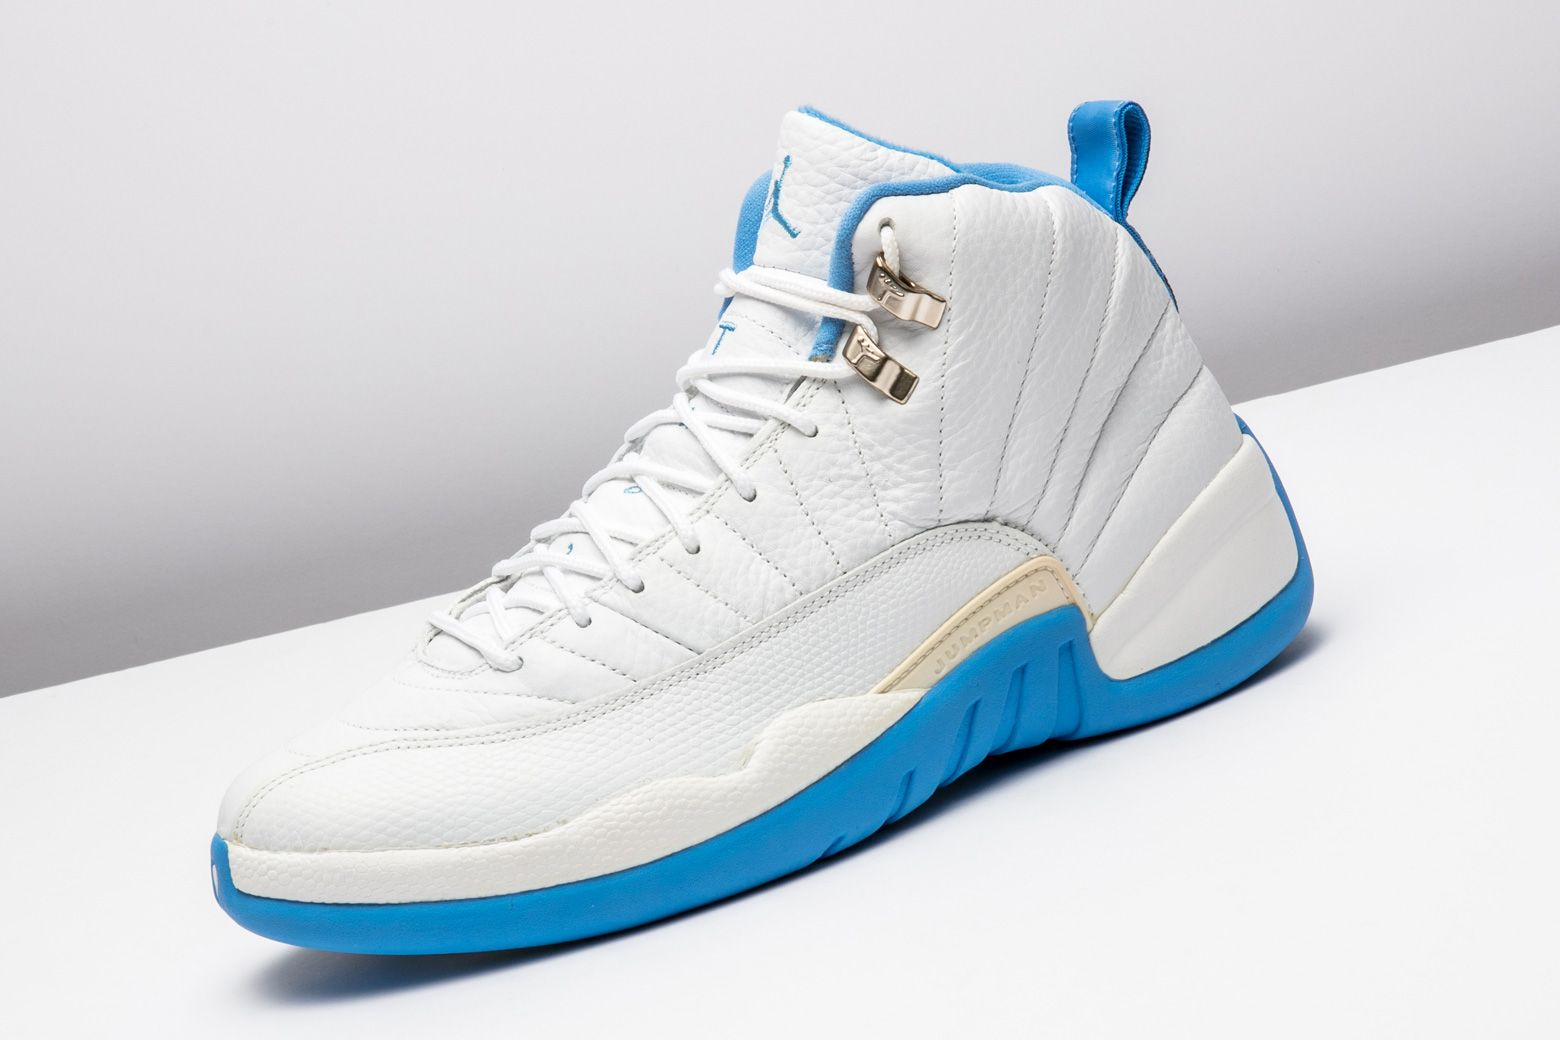 reputable site e2c32 200ea Seen during Carmelo Anthony s days in Denver, the Air Jordan 12 Retro